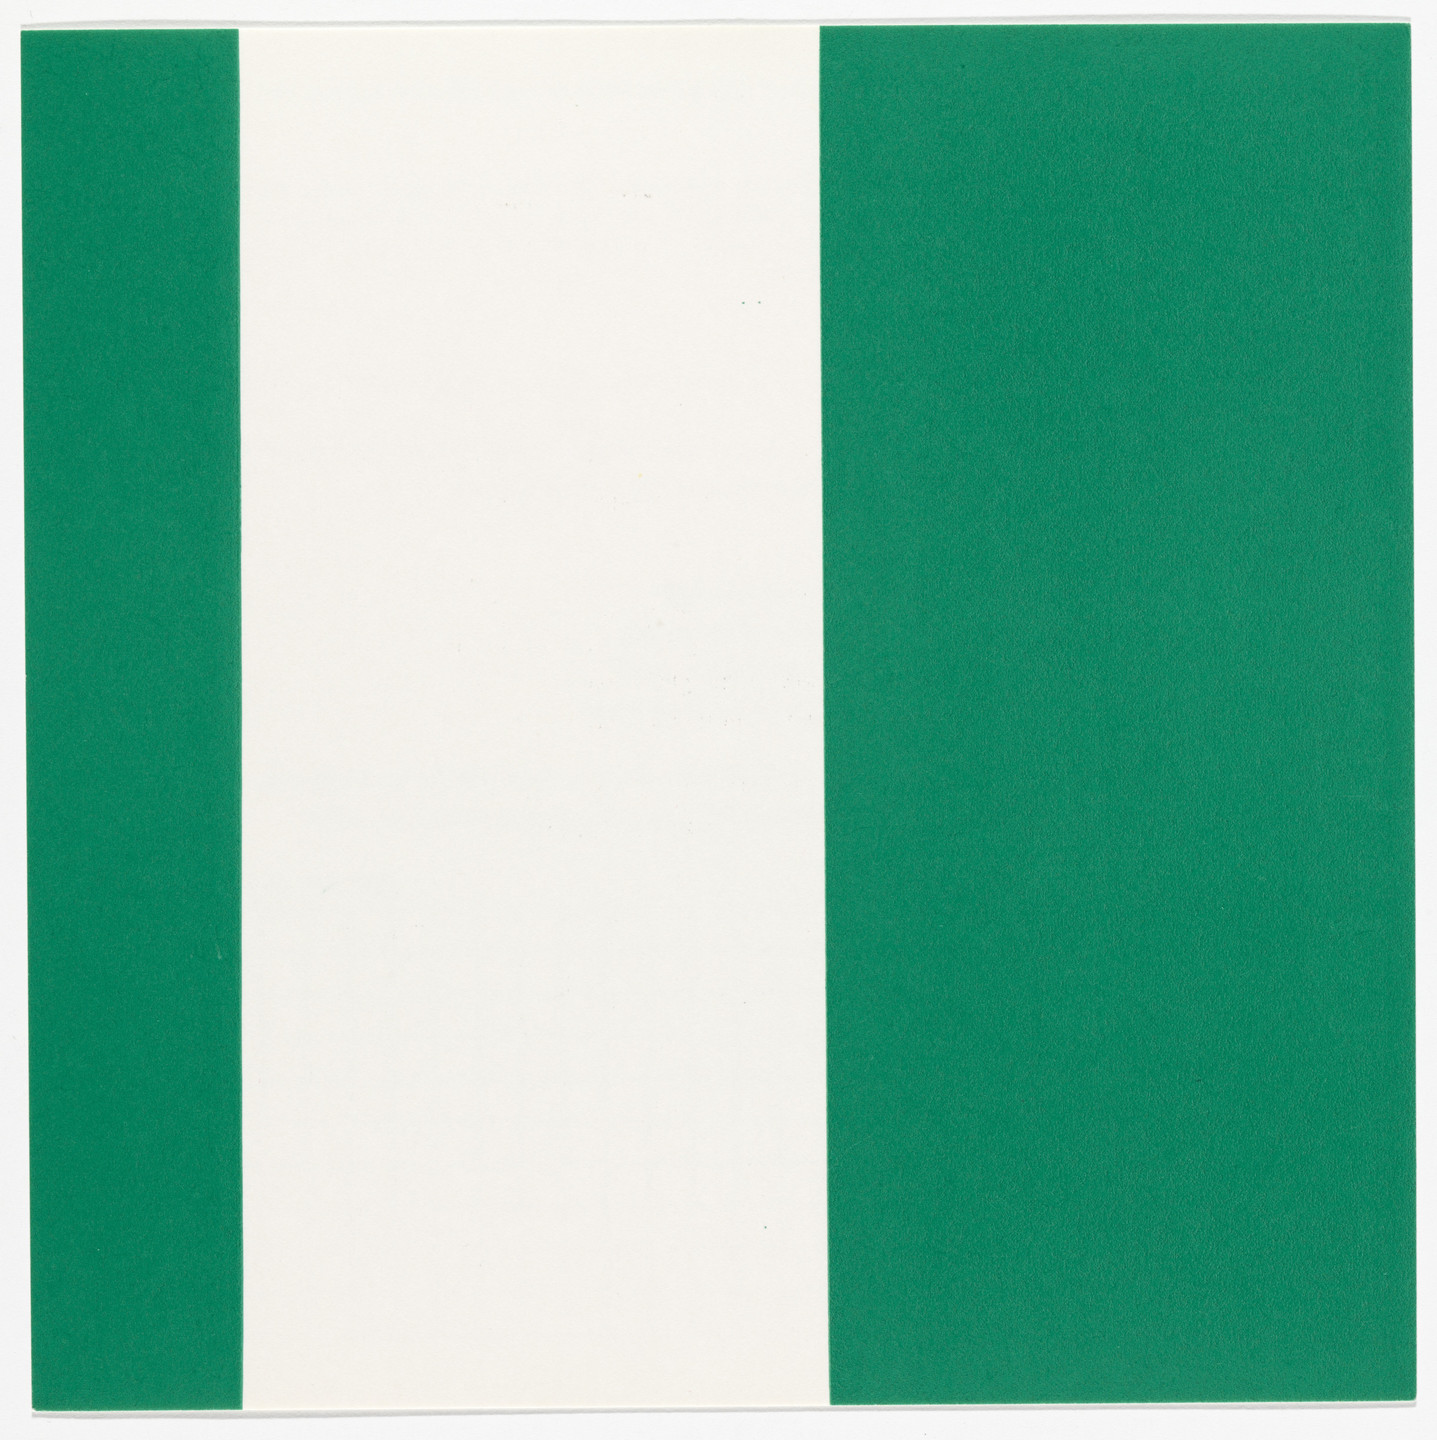 Daniel Buren. 1000 Placements from the Rubber Stamp Portfolio. 1977